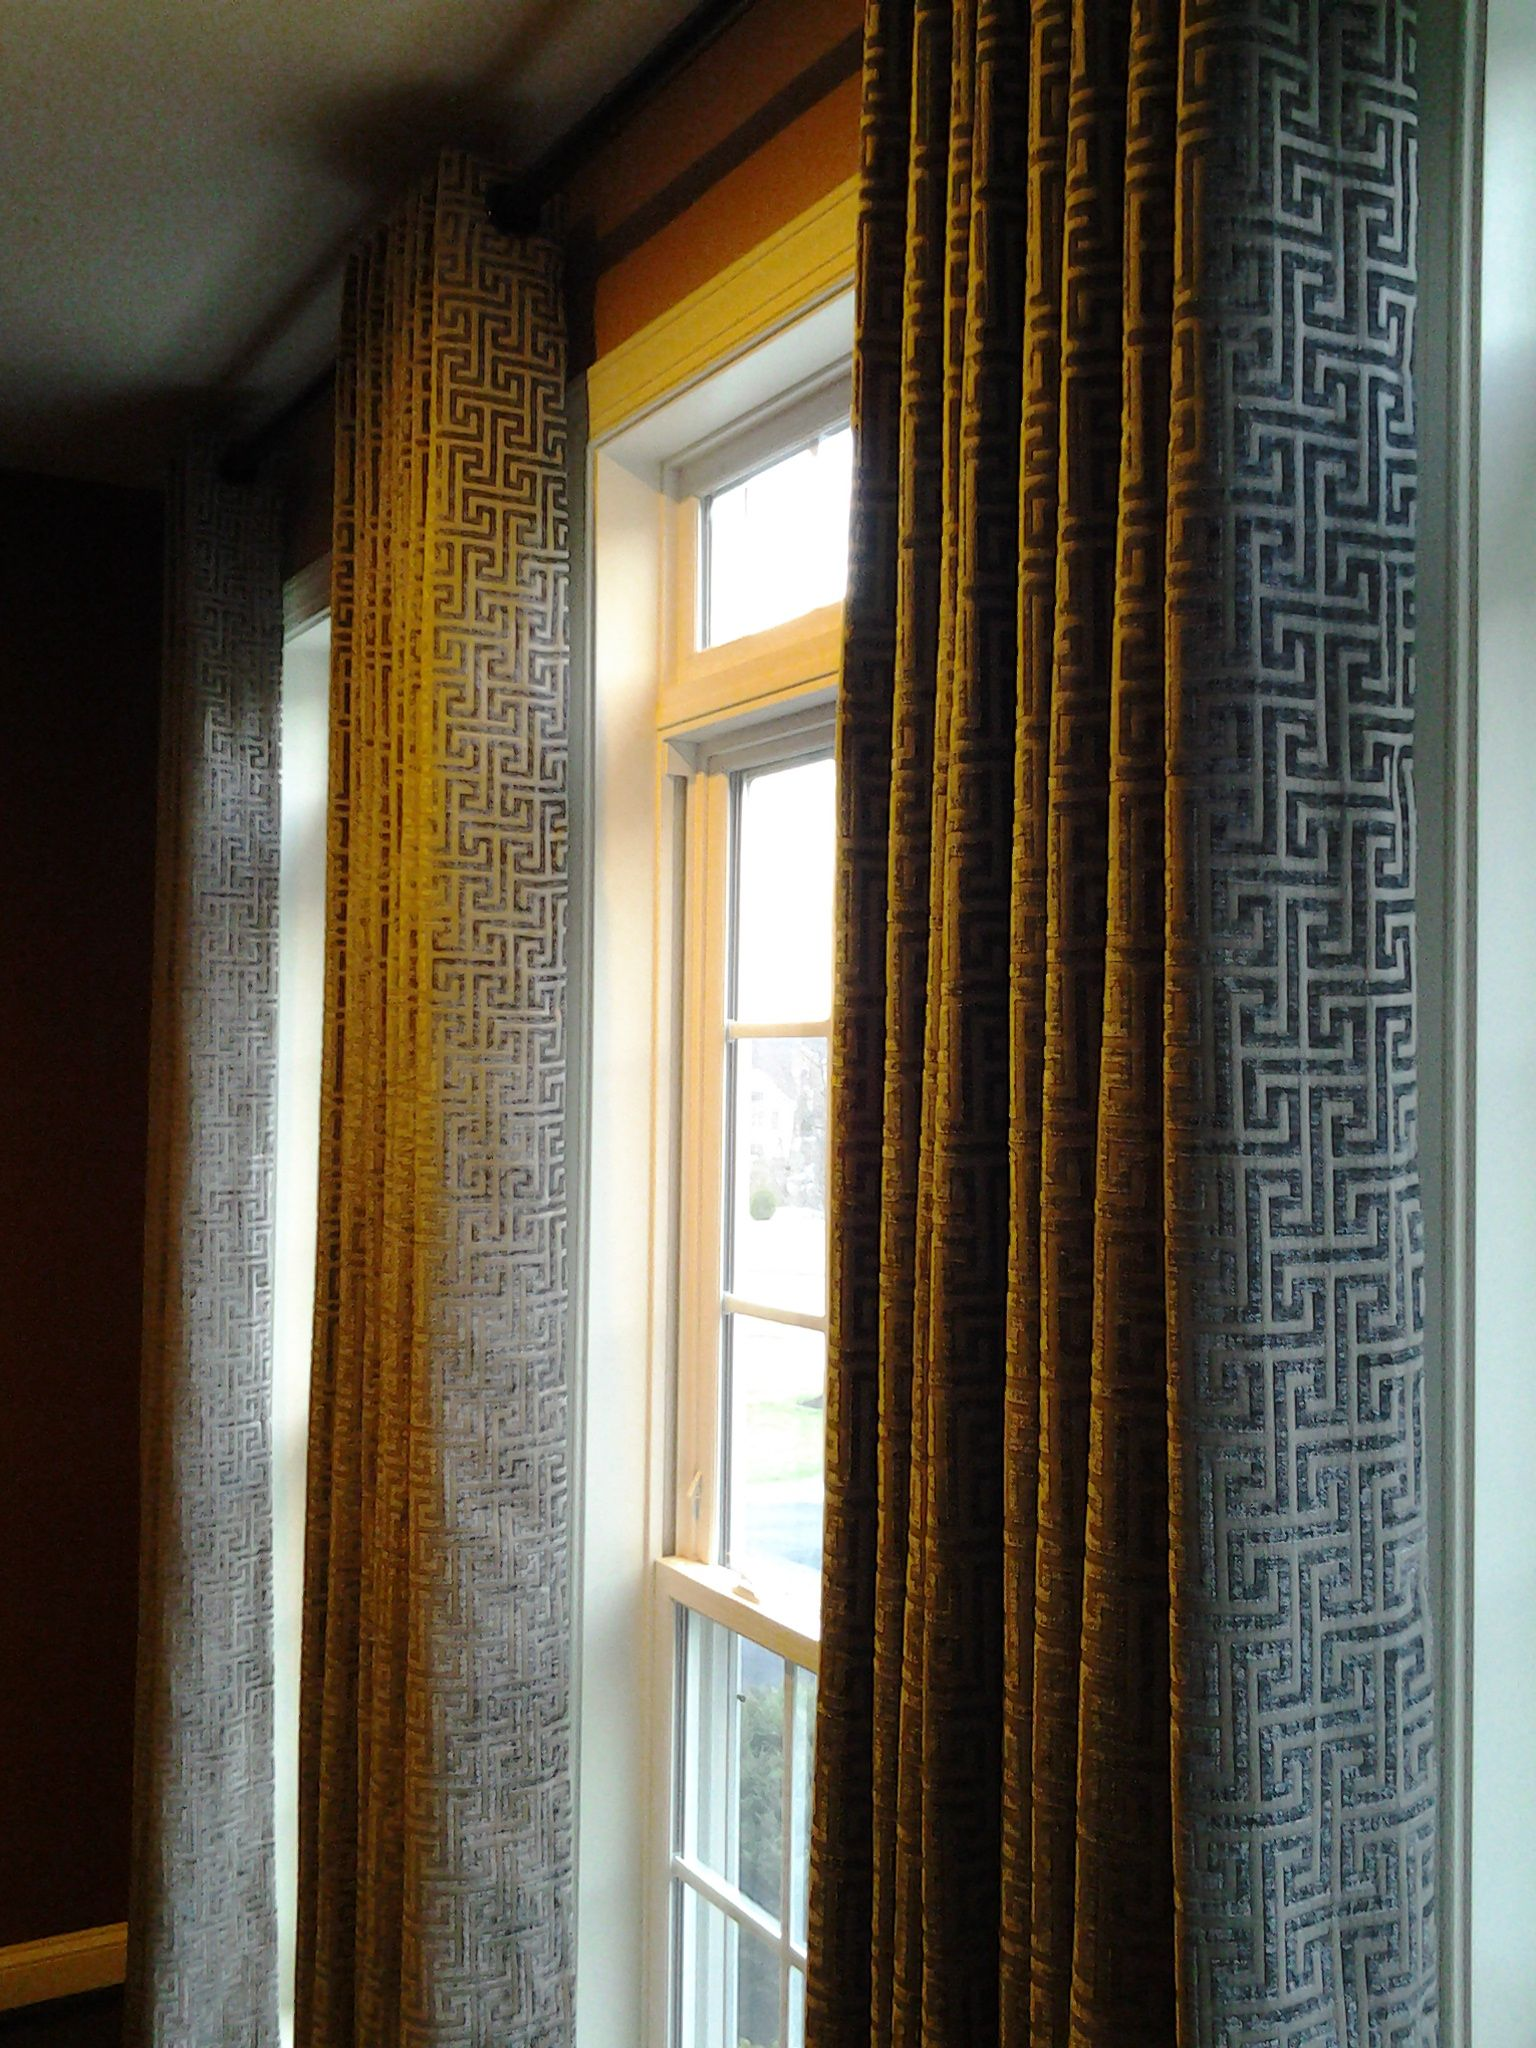 office drapes. Home Office Drapery From Inspired Drapes With Budget Blinds! The Greek Key Pattern Shows Up Again! #budgetblinds #bb_silverspring #moderndrapery